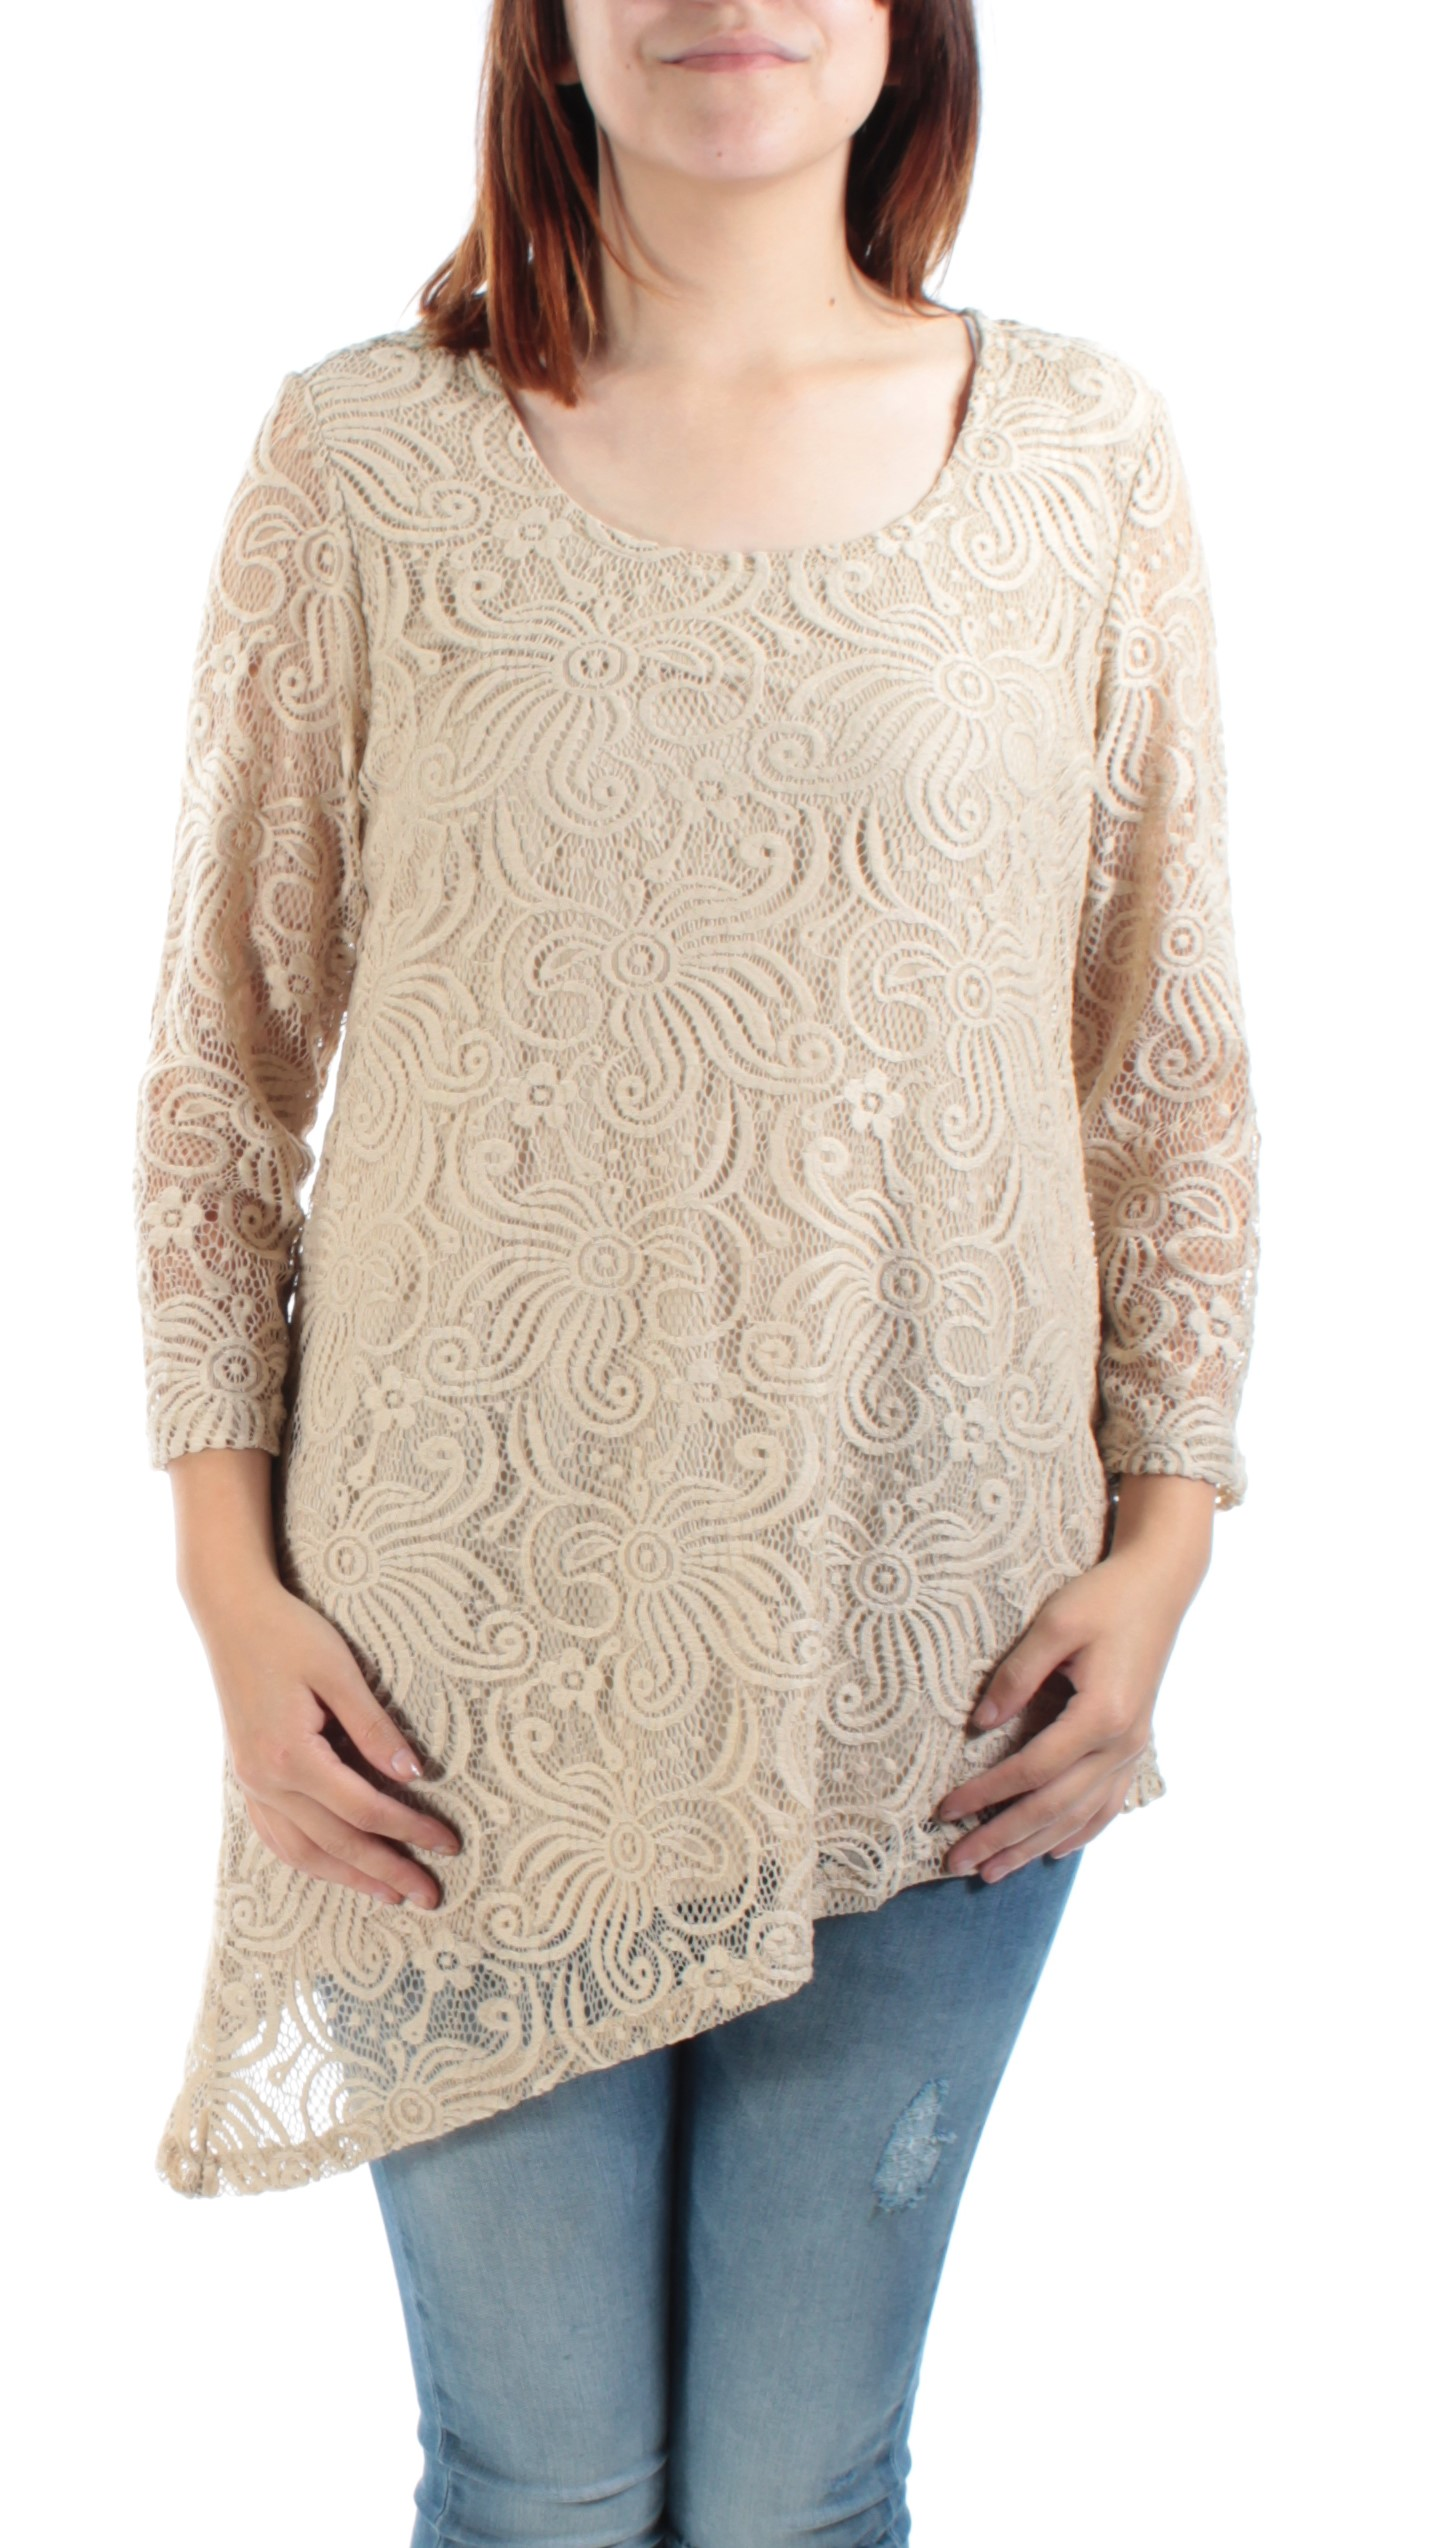 JM-COLLECTION-Womens-New-1150-Beige-Scoop-Neck-3-4-Sleeve-Lace-Casual-Top-S-B-B